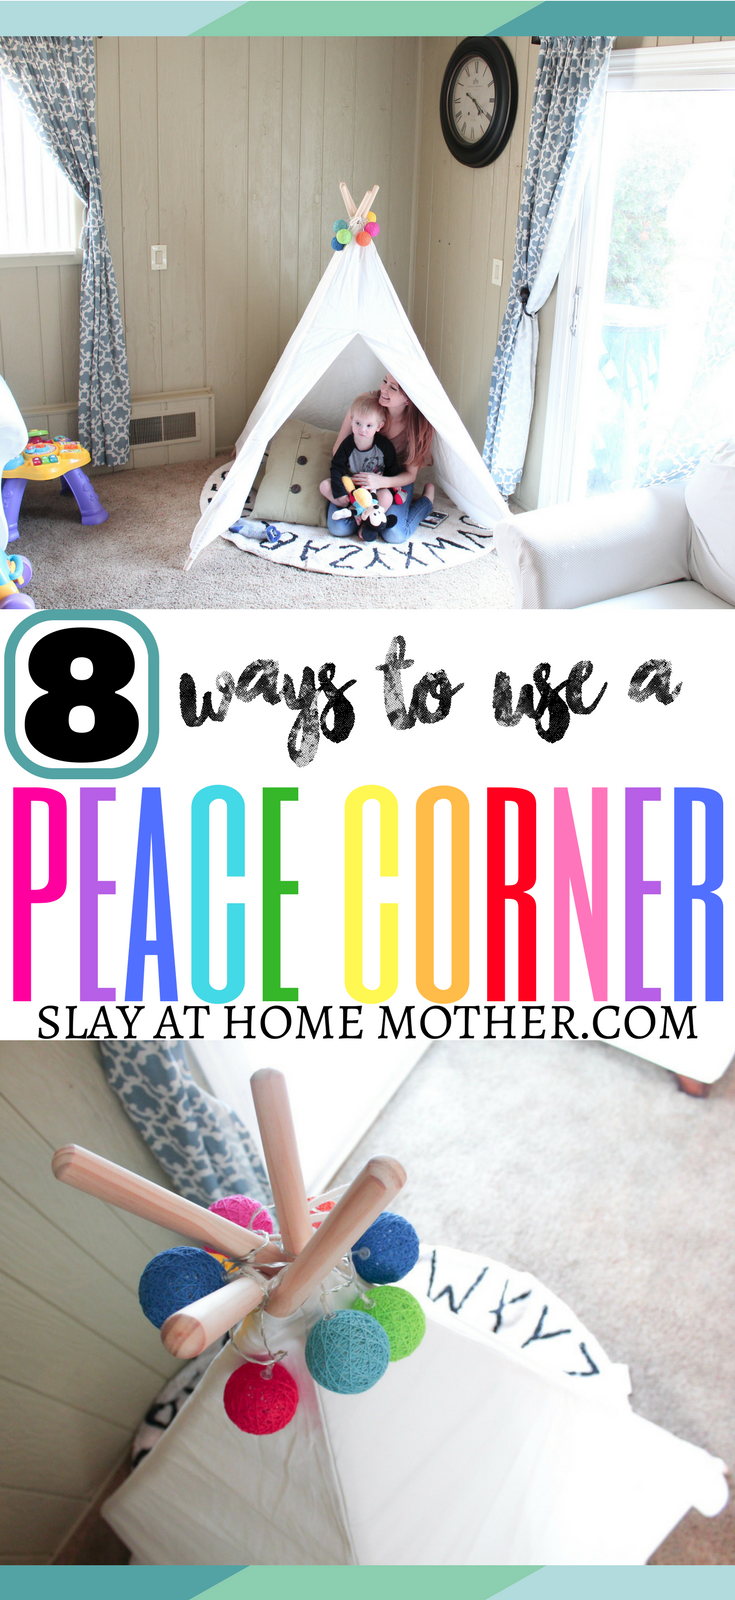 Setting Up Our Peace Corner - SlayAtHomeMother.com [Featuring Teepee from My Uptown Baby] #peacecorner #positiveparenting #montessori #nurserydecor #teepee #kidsroom